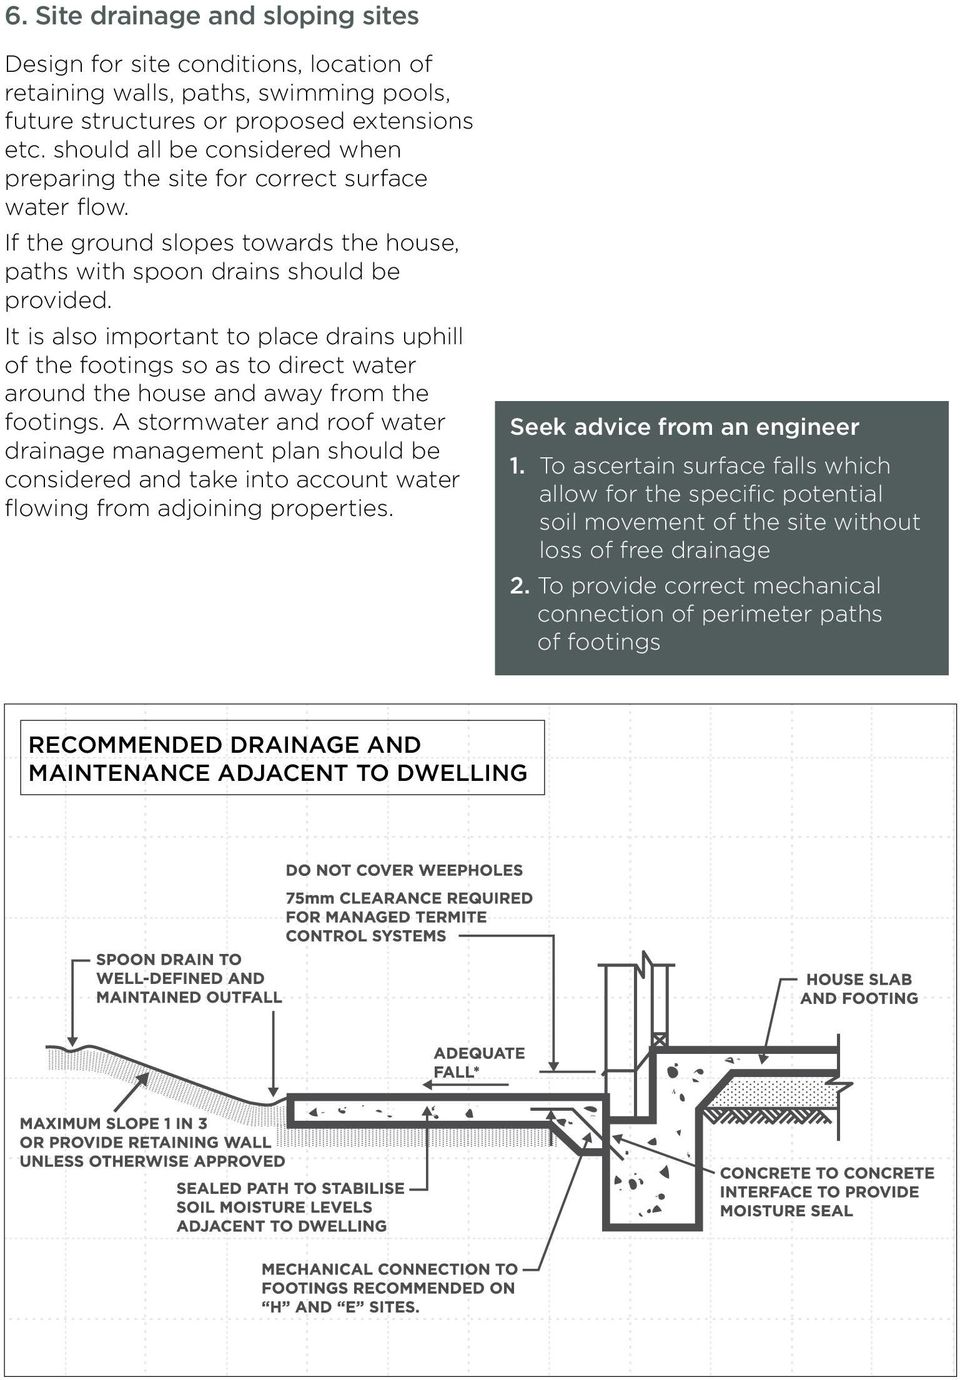 It is also important to place drains uphill of the footings so as to direct water around the house and away from the footings.